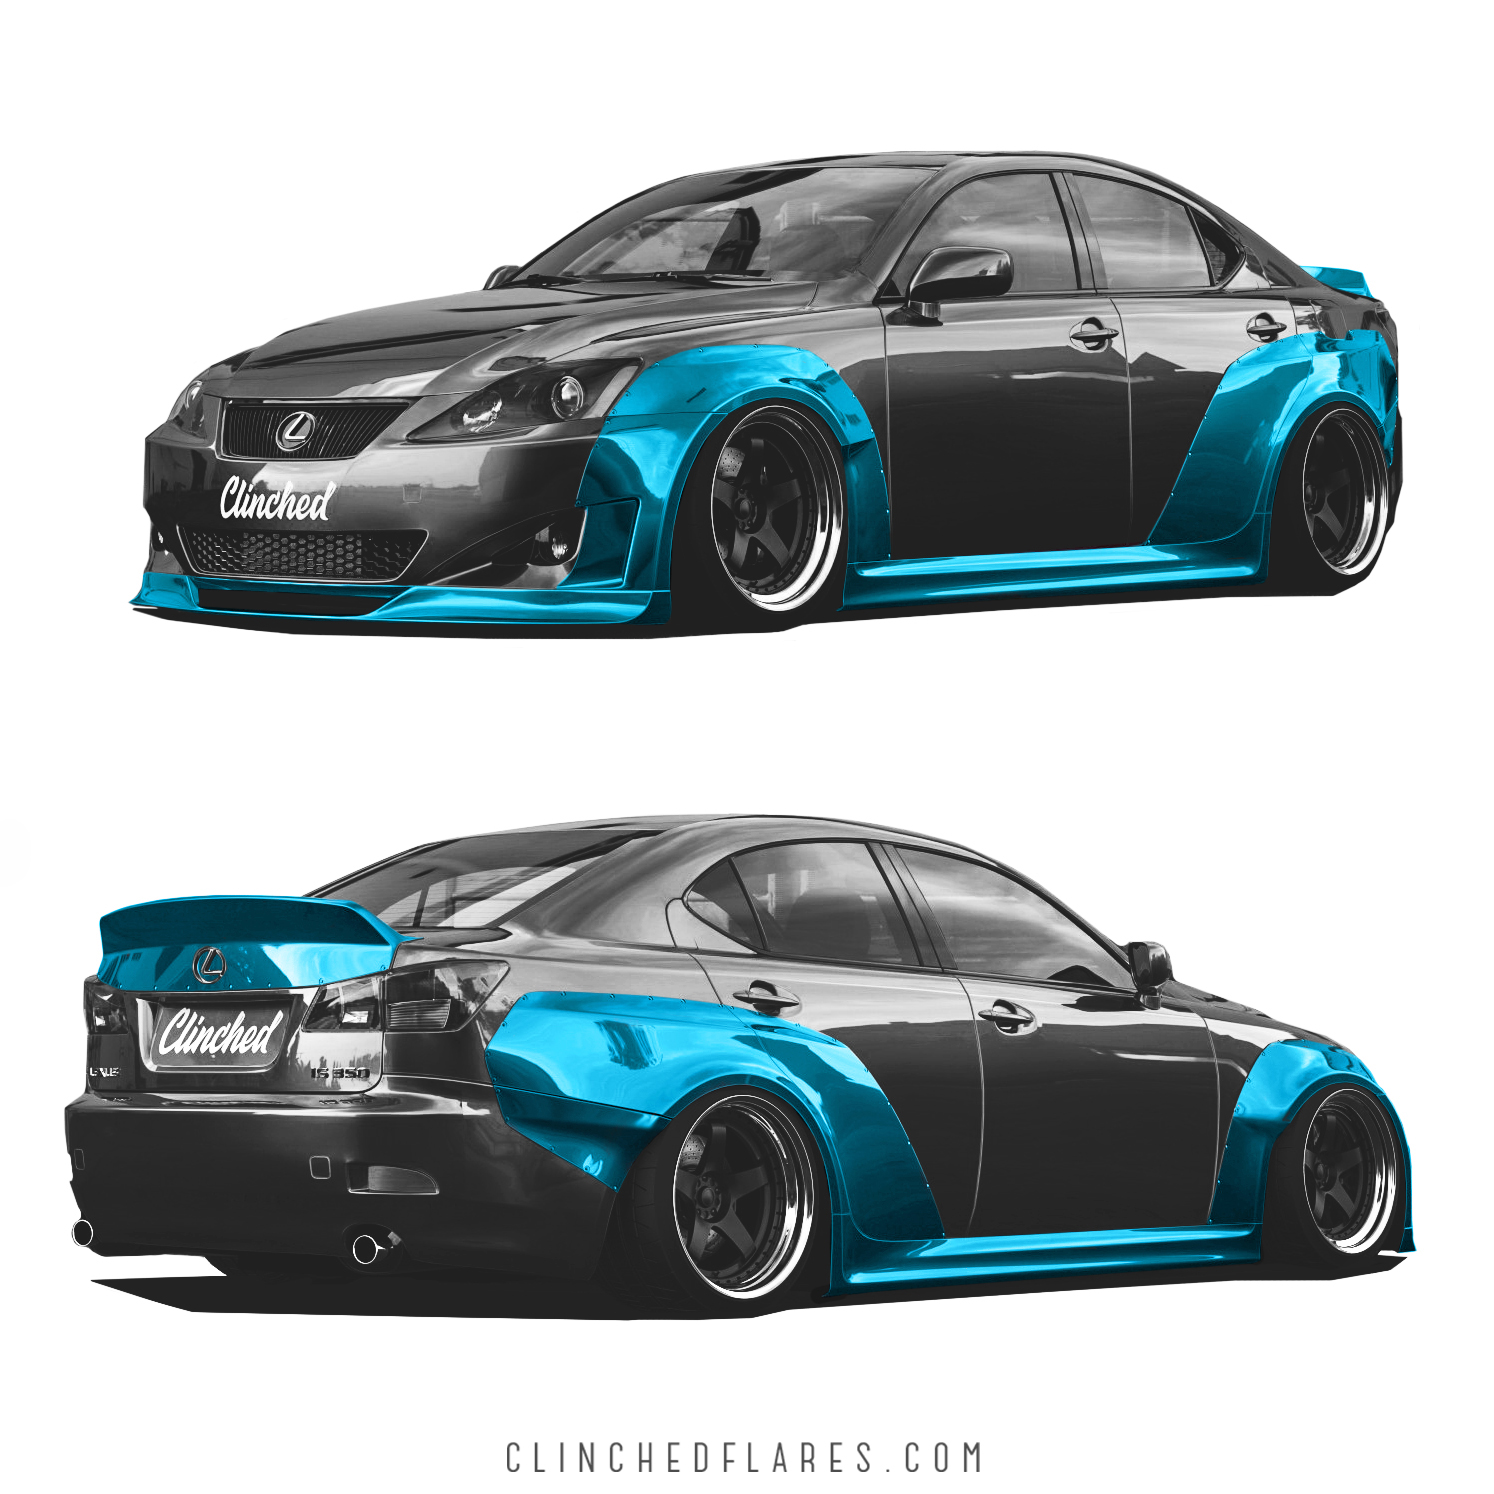 2008 Lexus Is350 Custom >> Lexus IS250 IS350 widebody kit by Clinched Flares